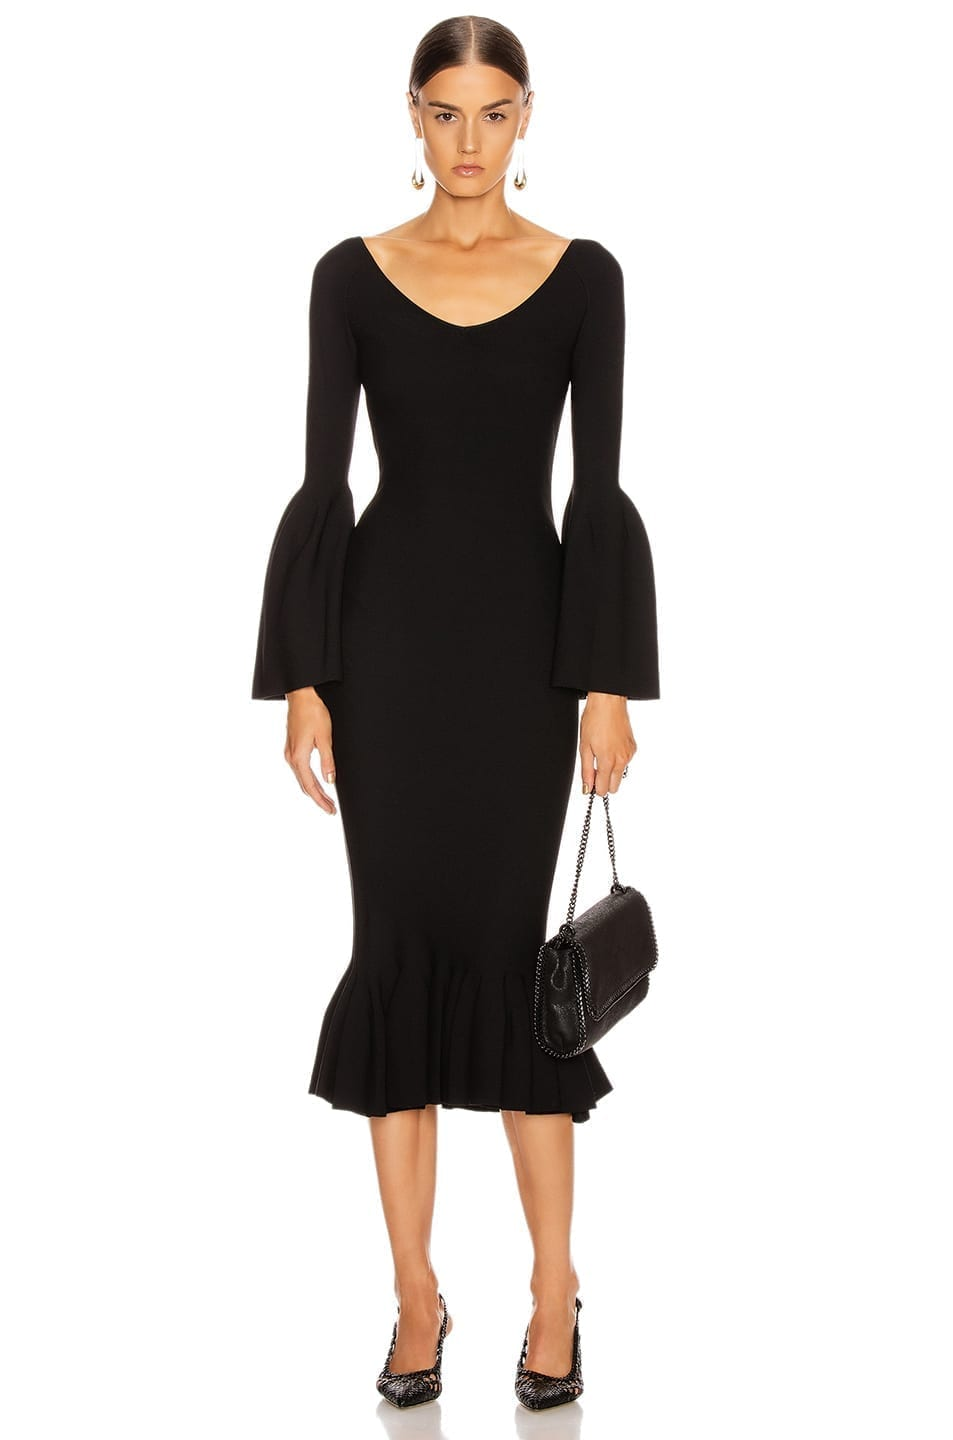 STELLA MCCARTNEY Peplum Midi Dress